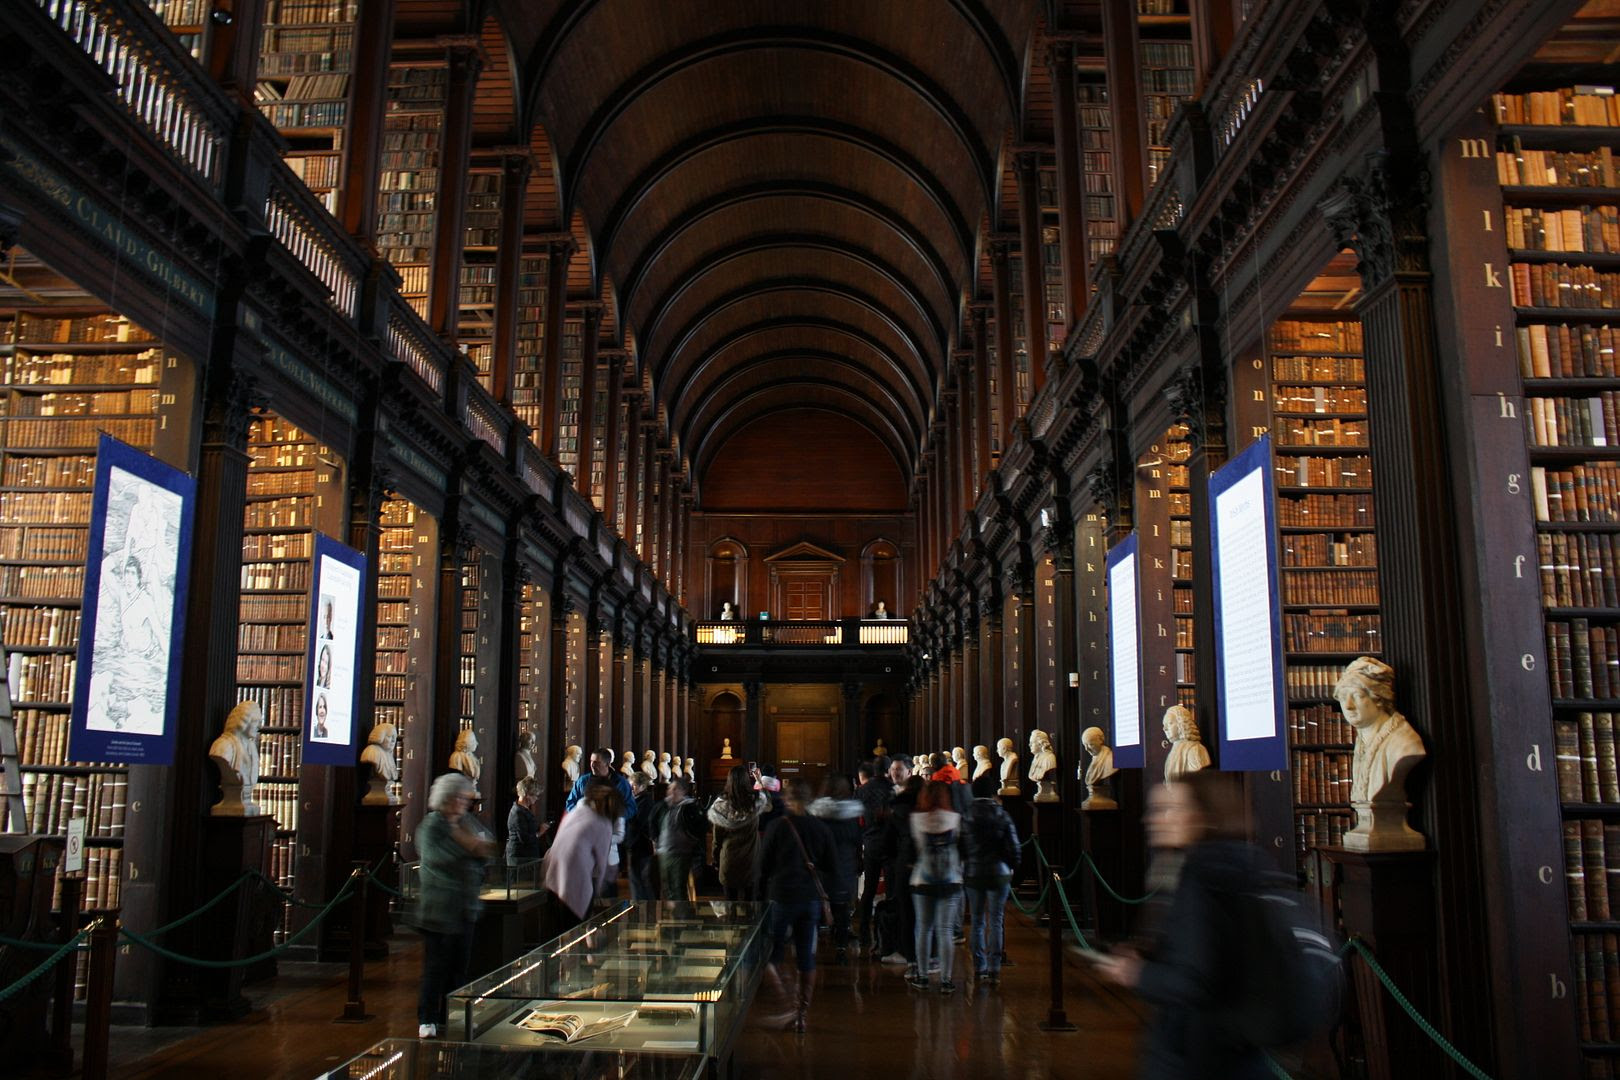 Book of Kells Exhibit, Dublin, Ireland photo IMG_4360_zpsznwxowfp.jpg